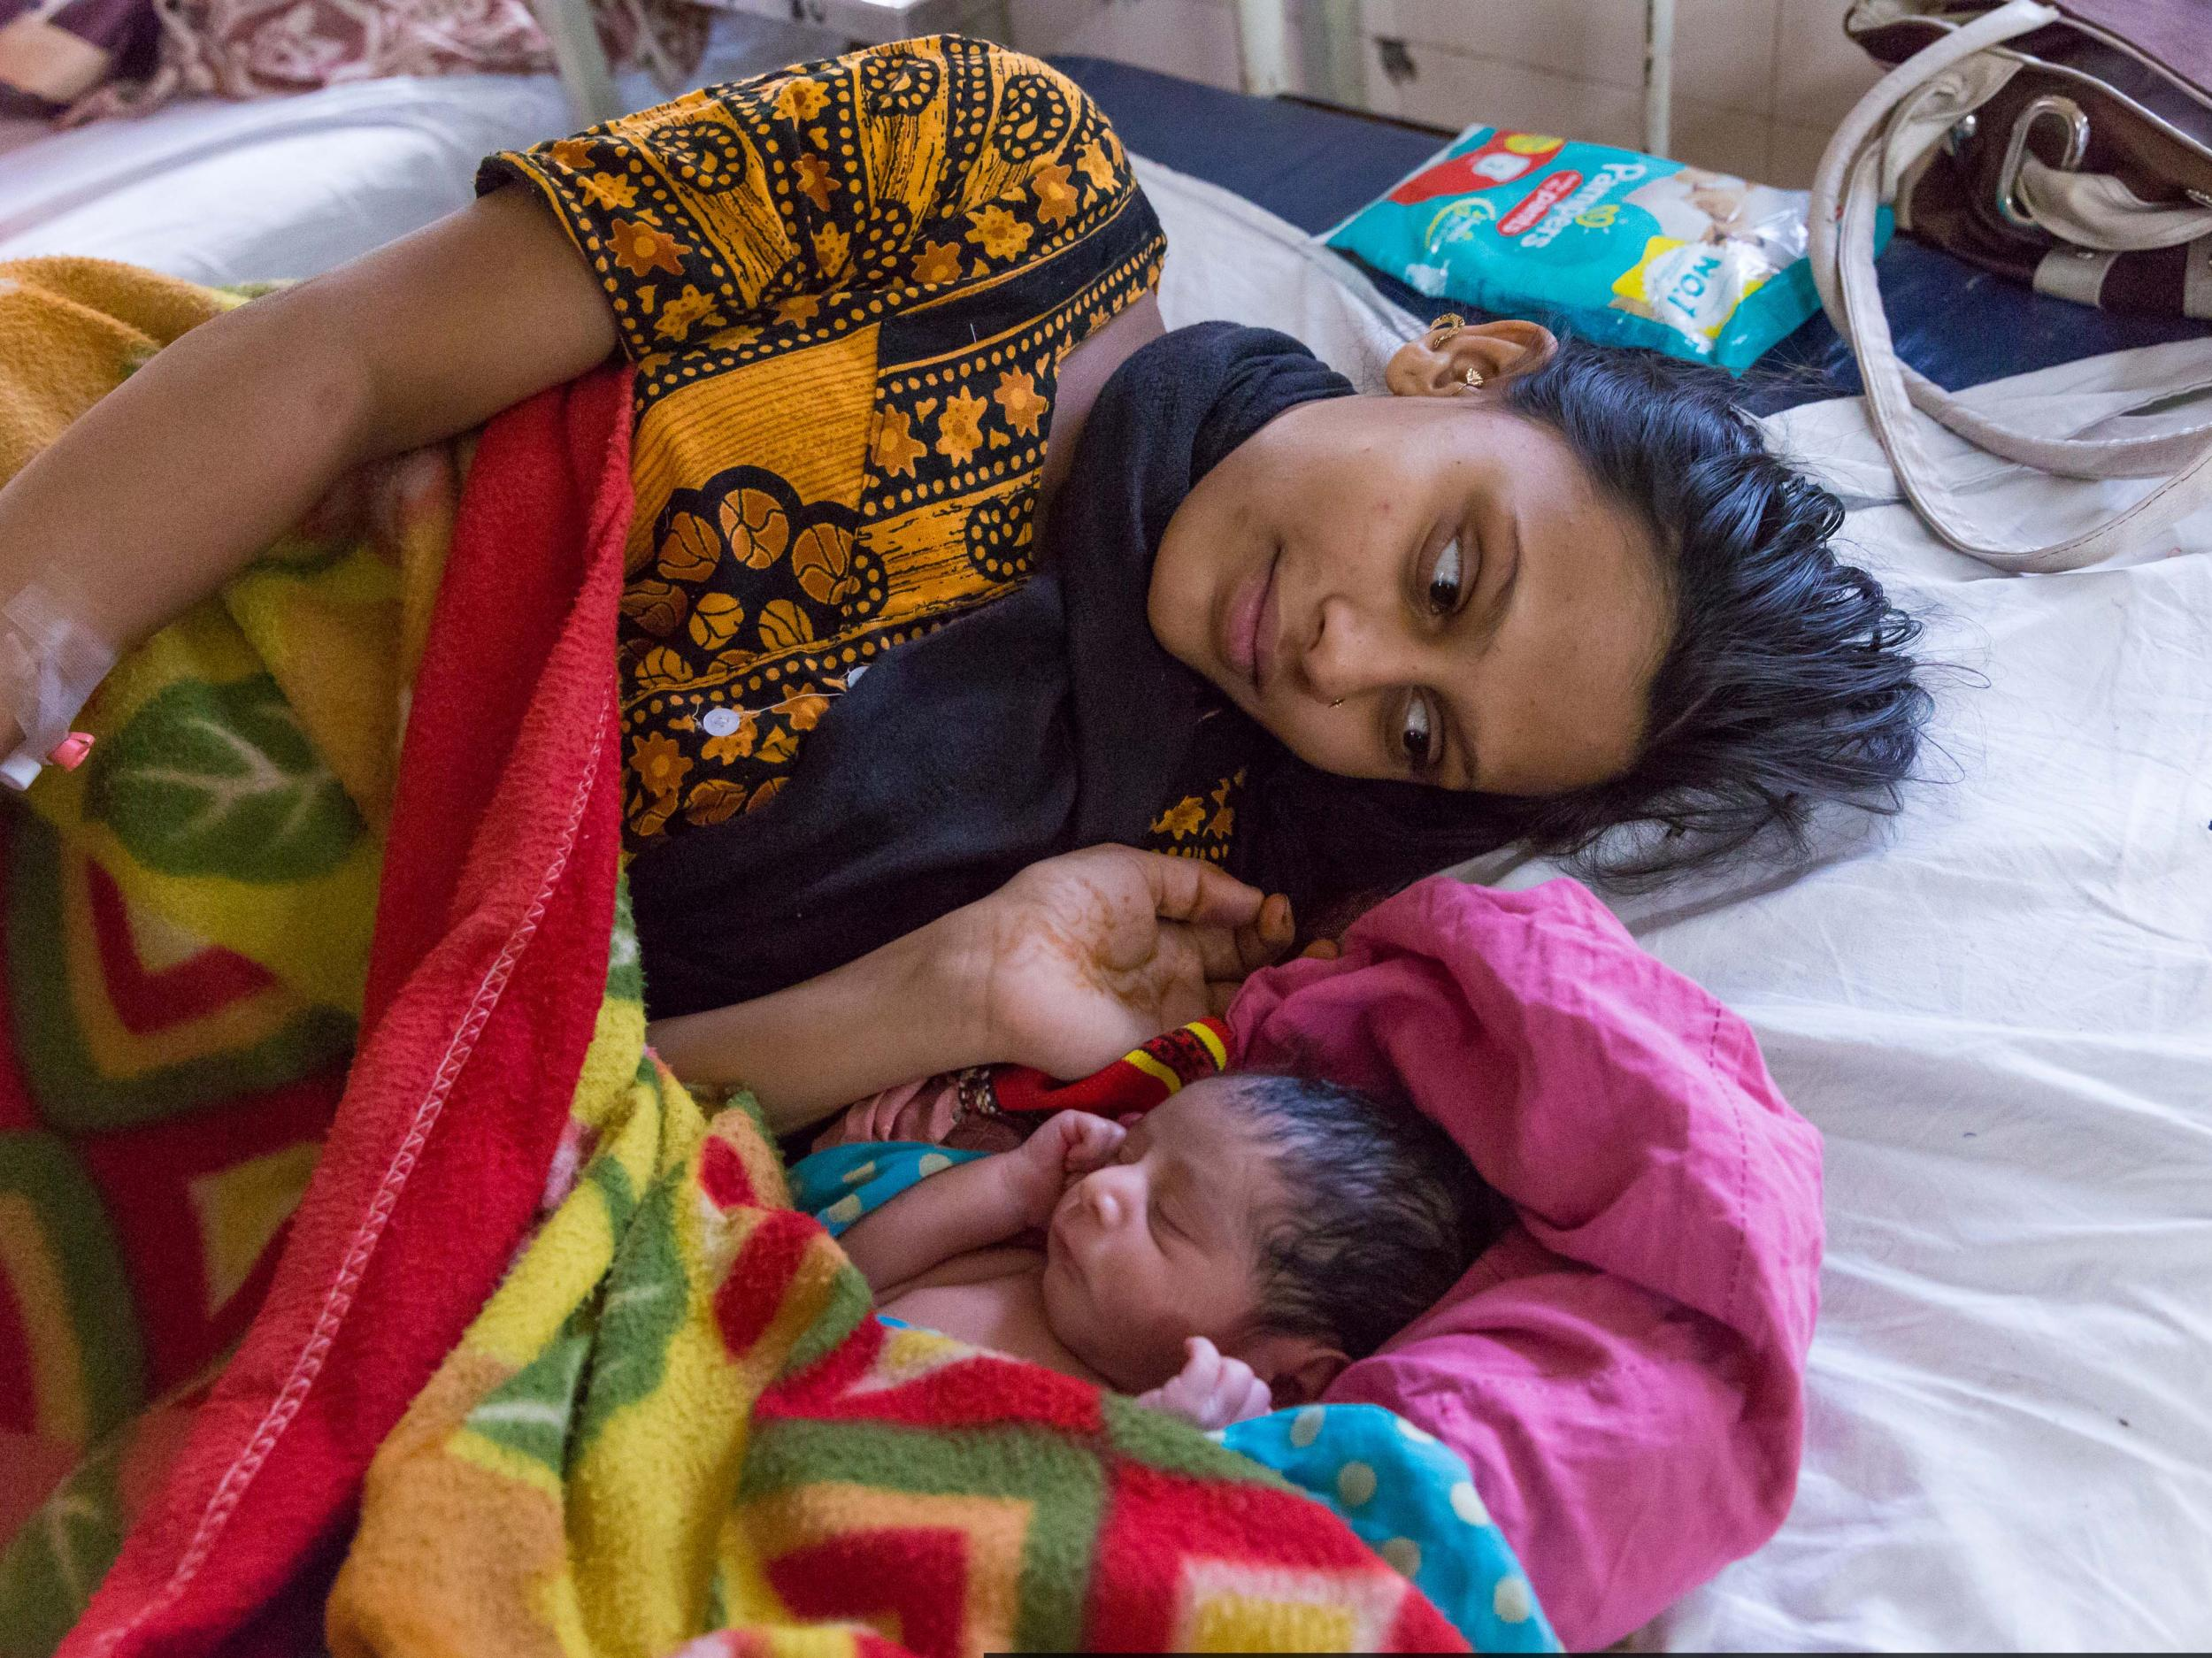 Thousands more women could survive childbirth with new